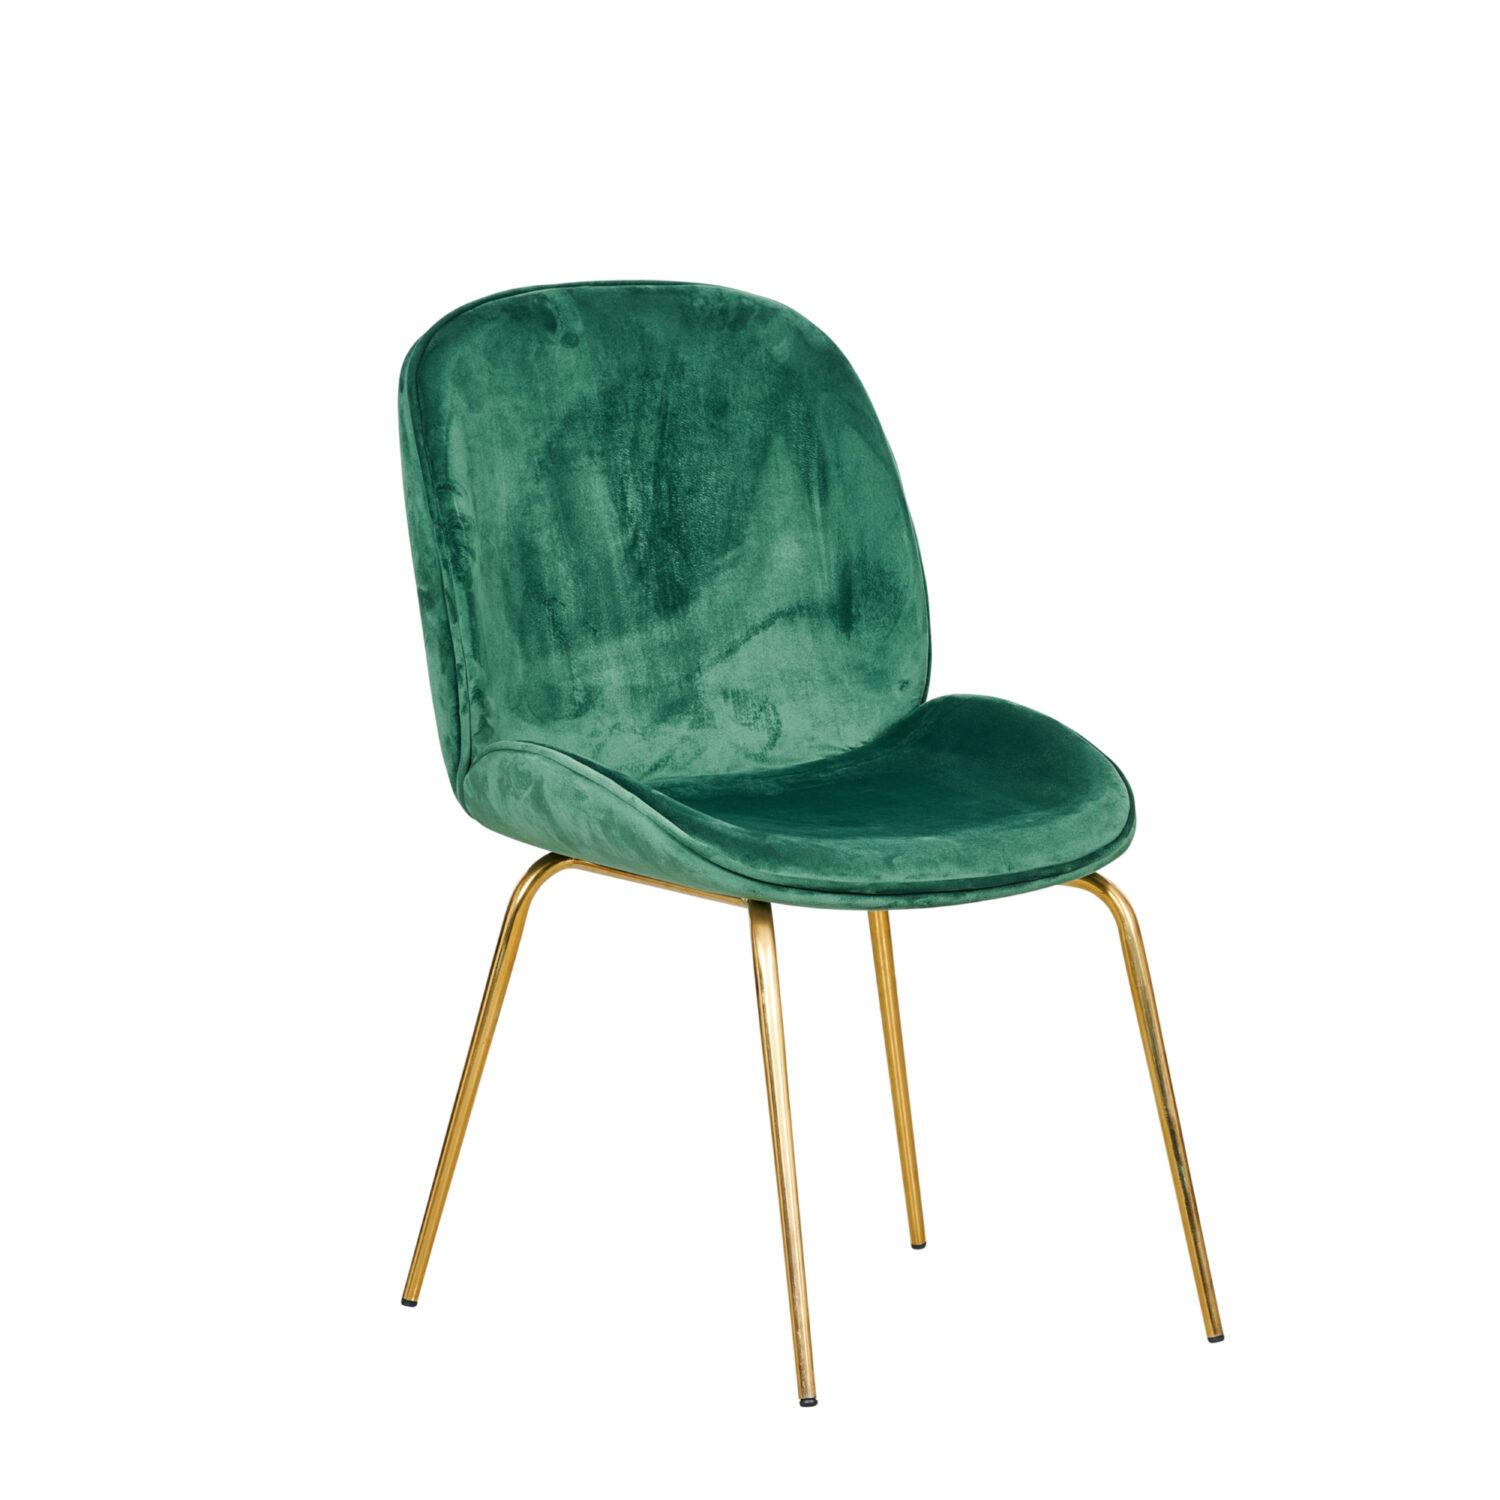 Grace Occasional Chair - Forest Green Seat & Gold Legs - Event Artillery